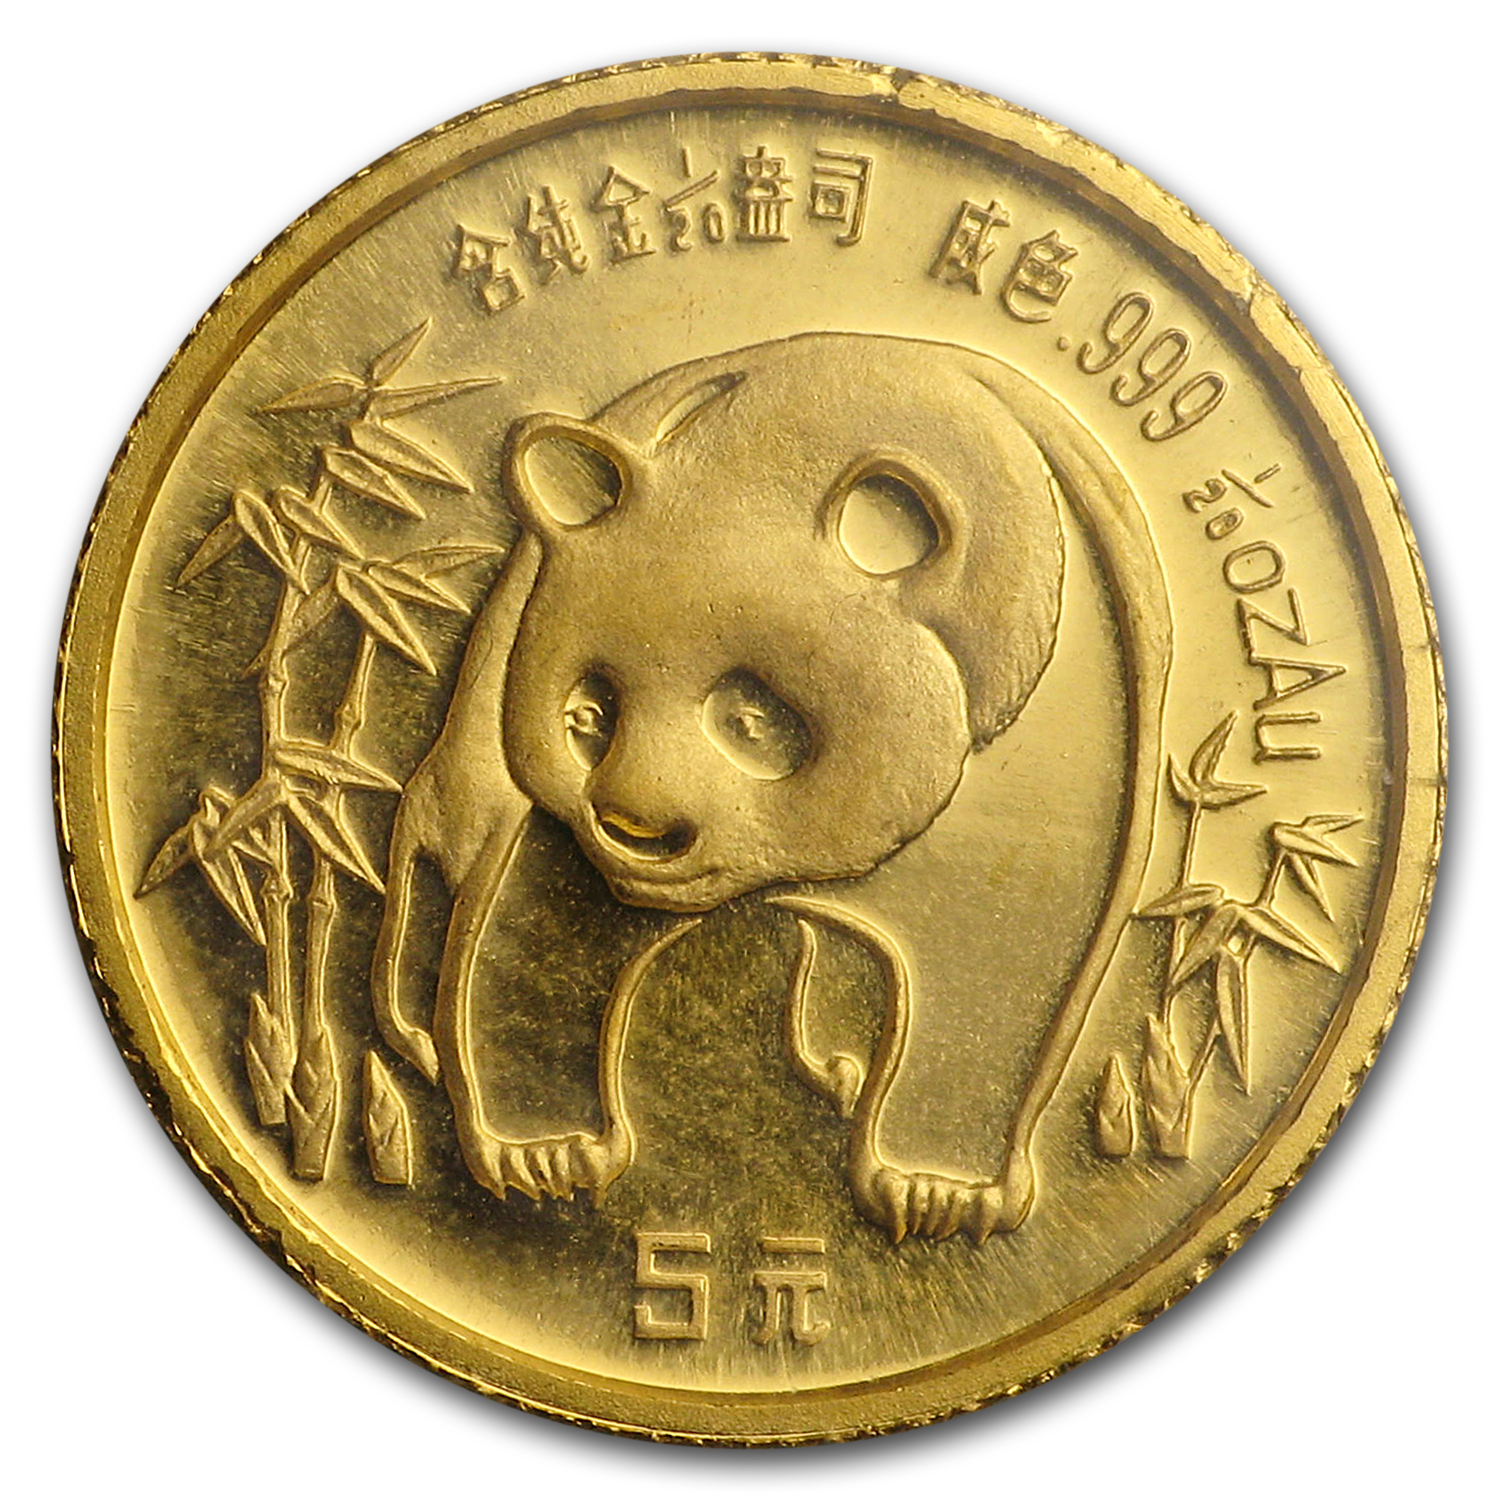 1986 China 1/20 oz Gold Panda BU (Sealed)